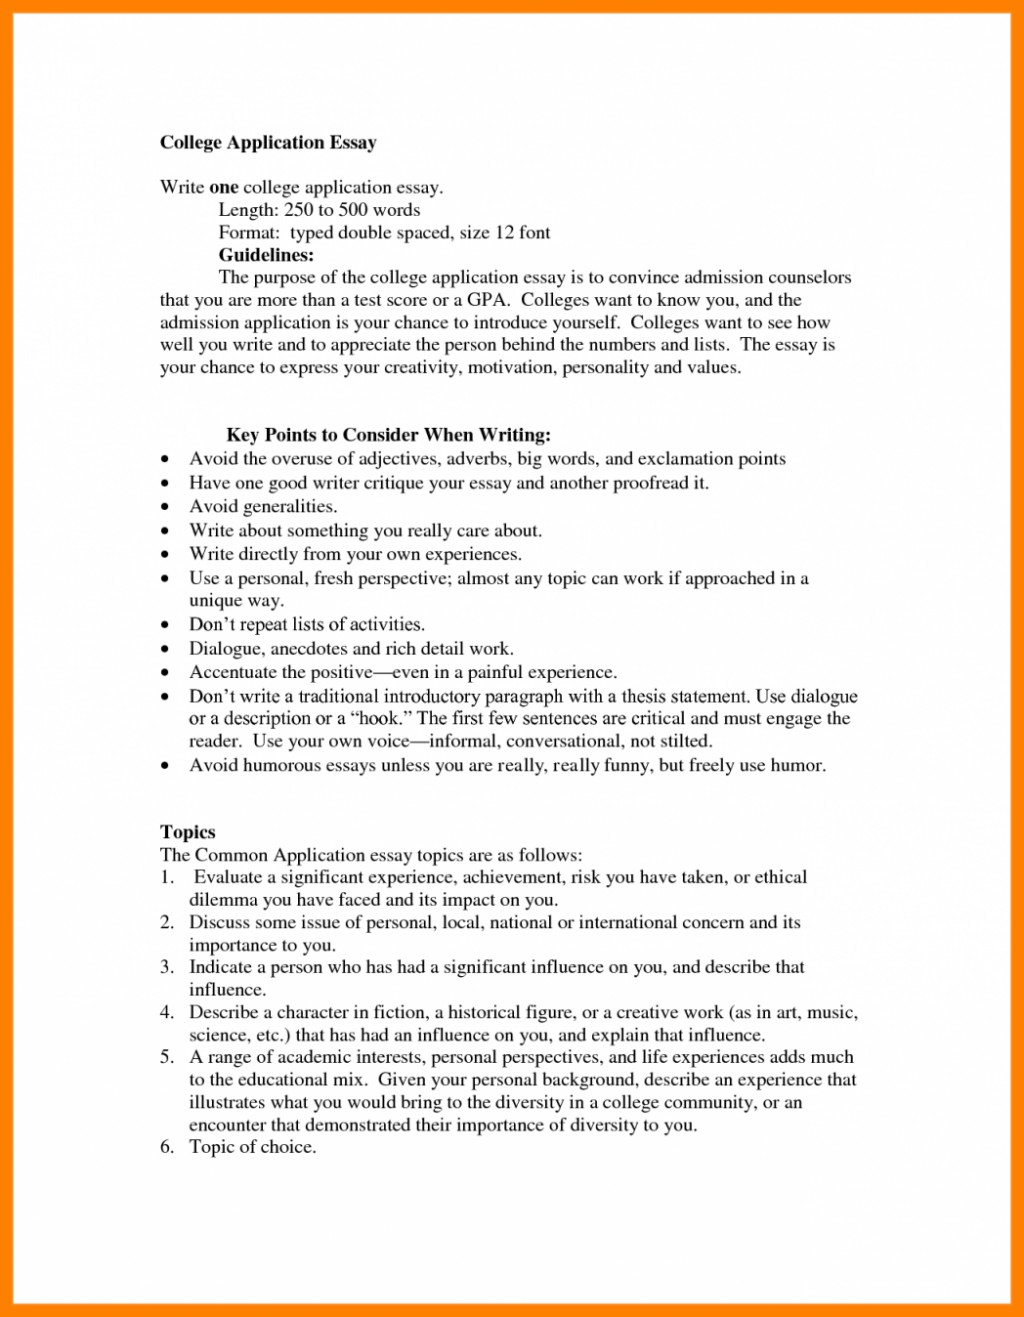 005 College Essay Format Template Example Of Application Double Spaced Compatibl Apa Mla Microsoft Word Heading Formats Examples Common App Sample Stirring Admission Large